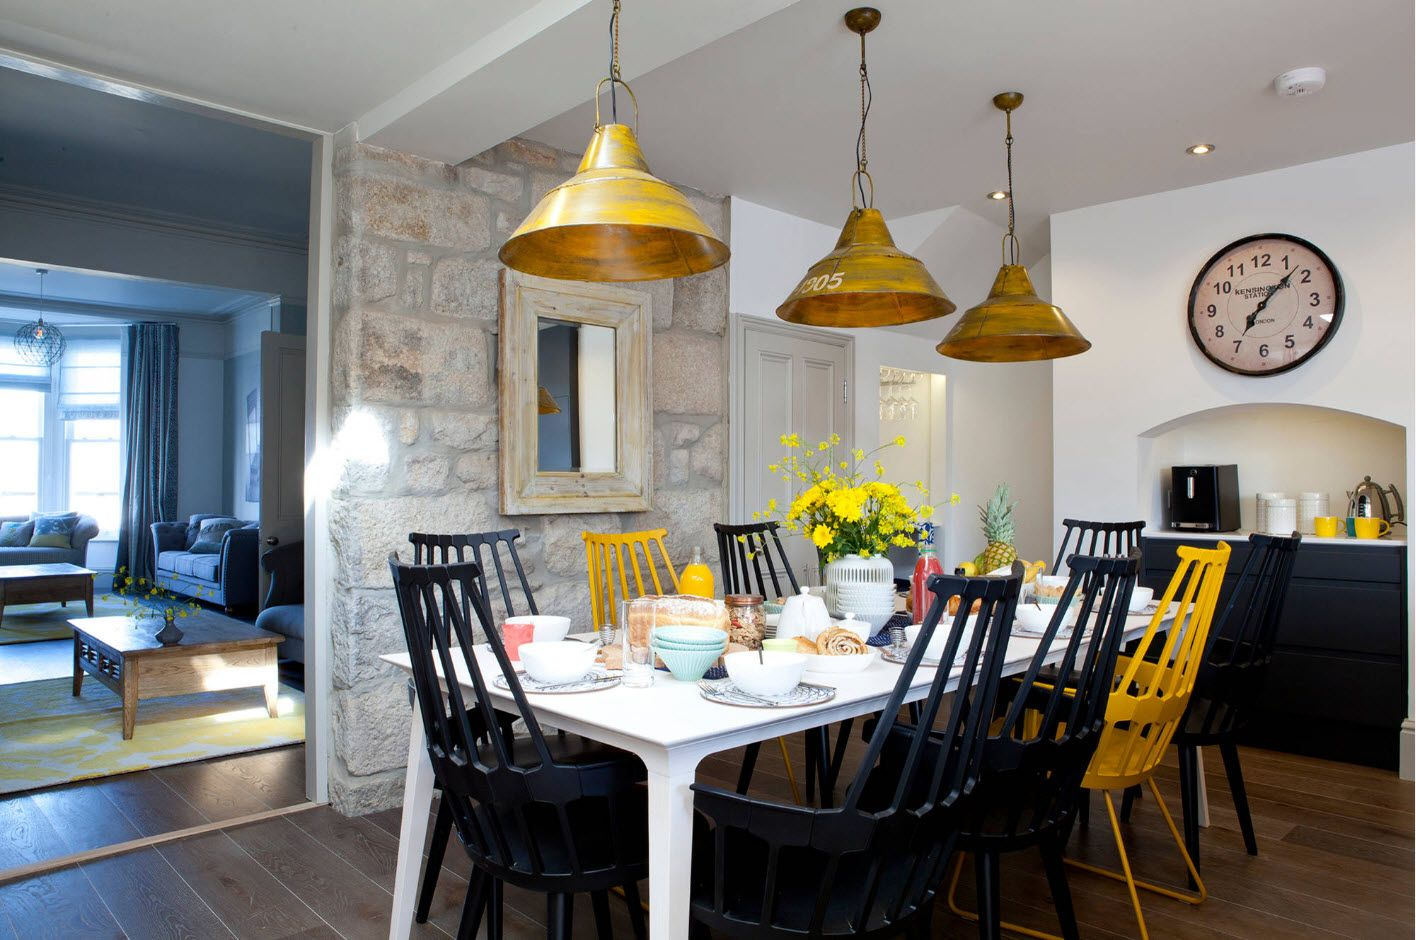 Dining Zone Table and Chairs: Practical and Aesthetic Composition. Gold lampshades adding a touch of pomposity into modern interior